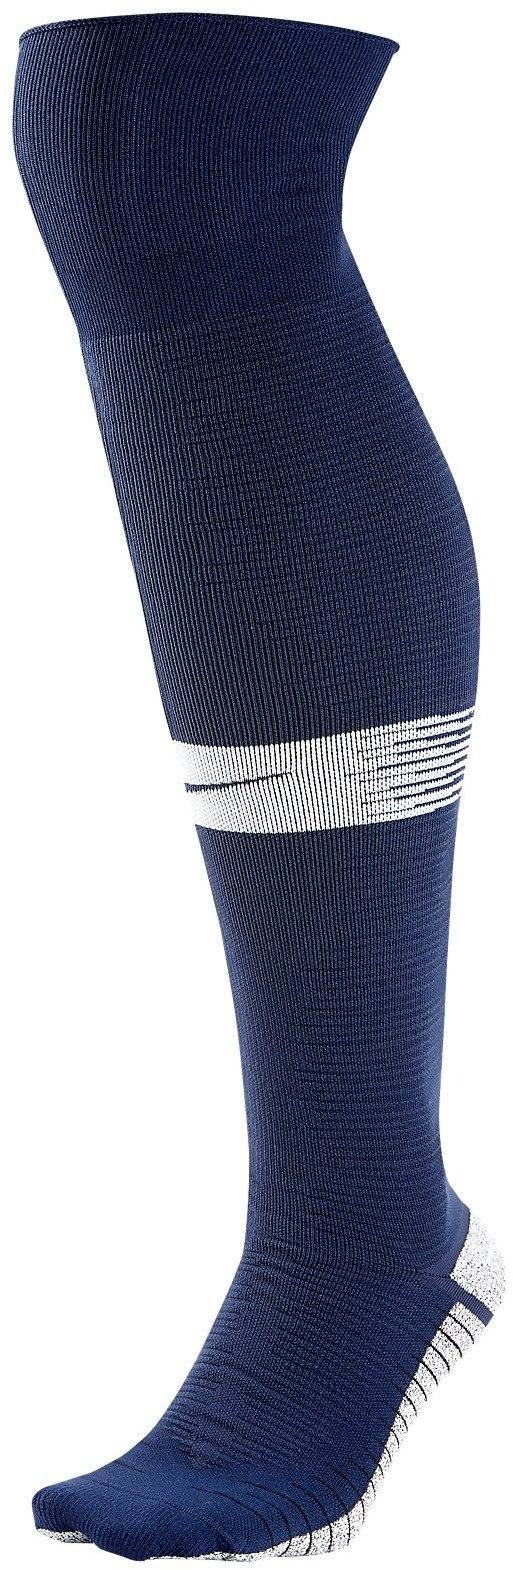 Štucne Nike U NG STRIKE LIGHT OTC - WC